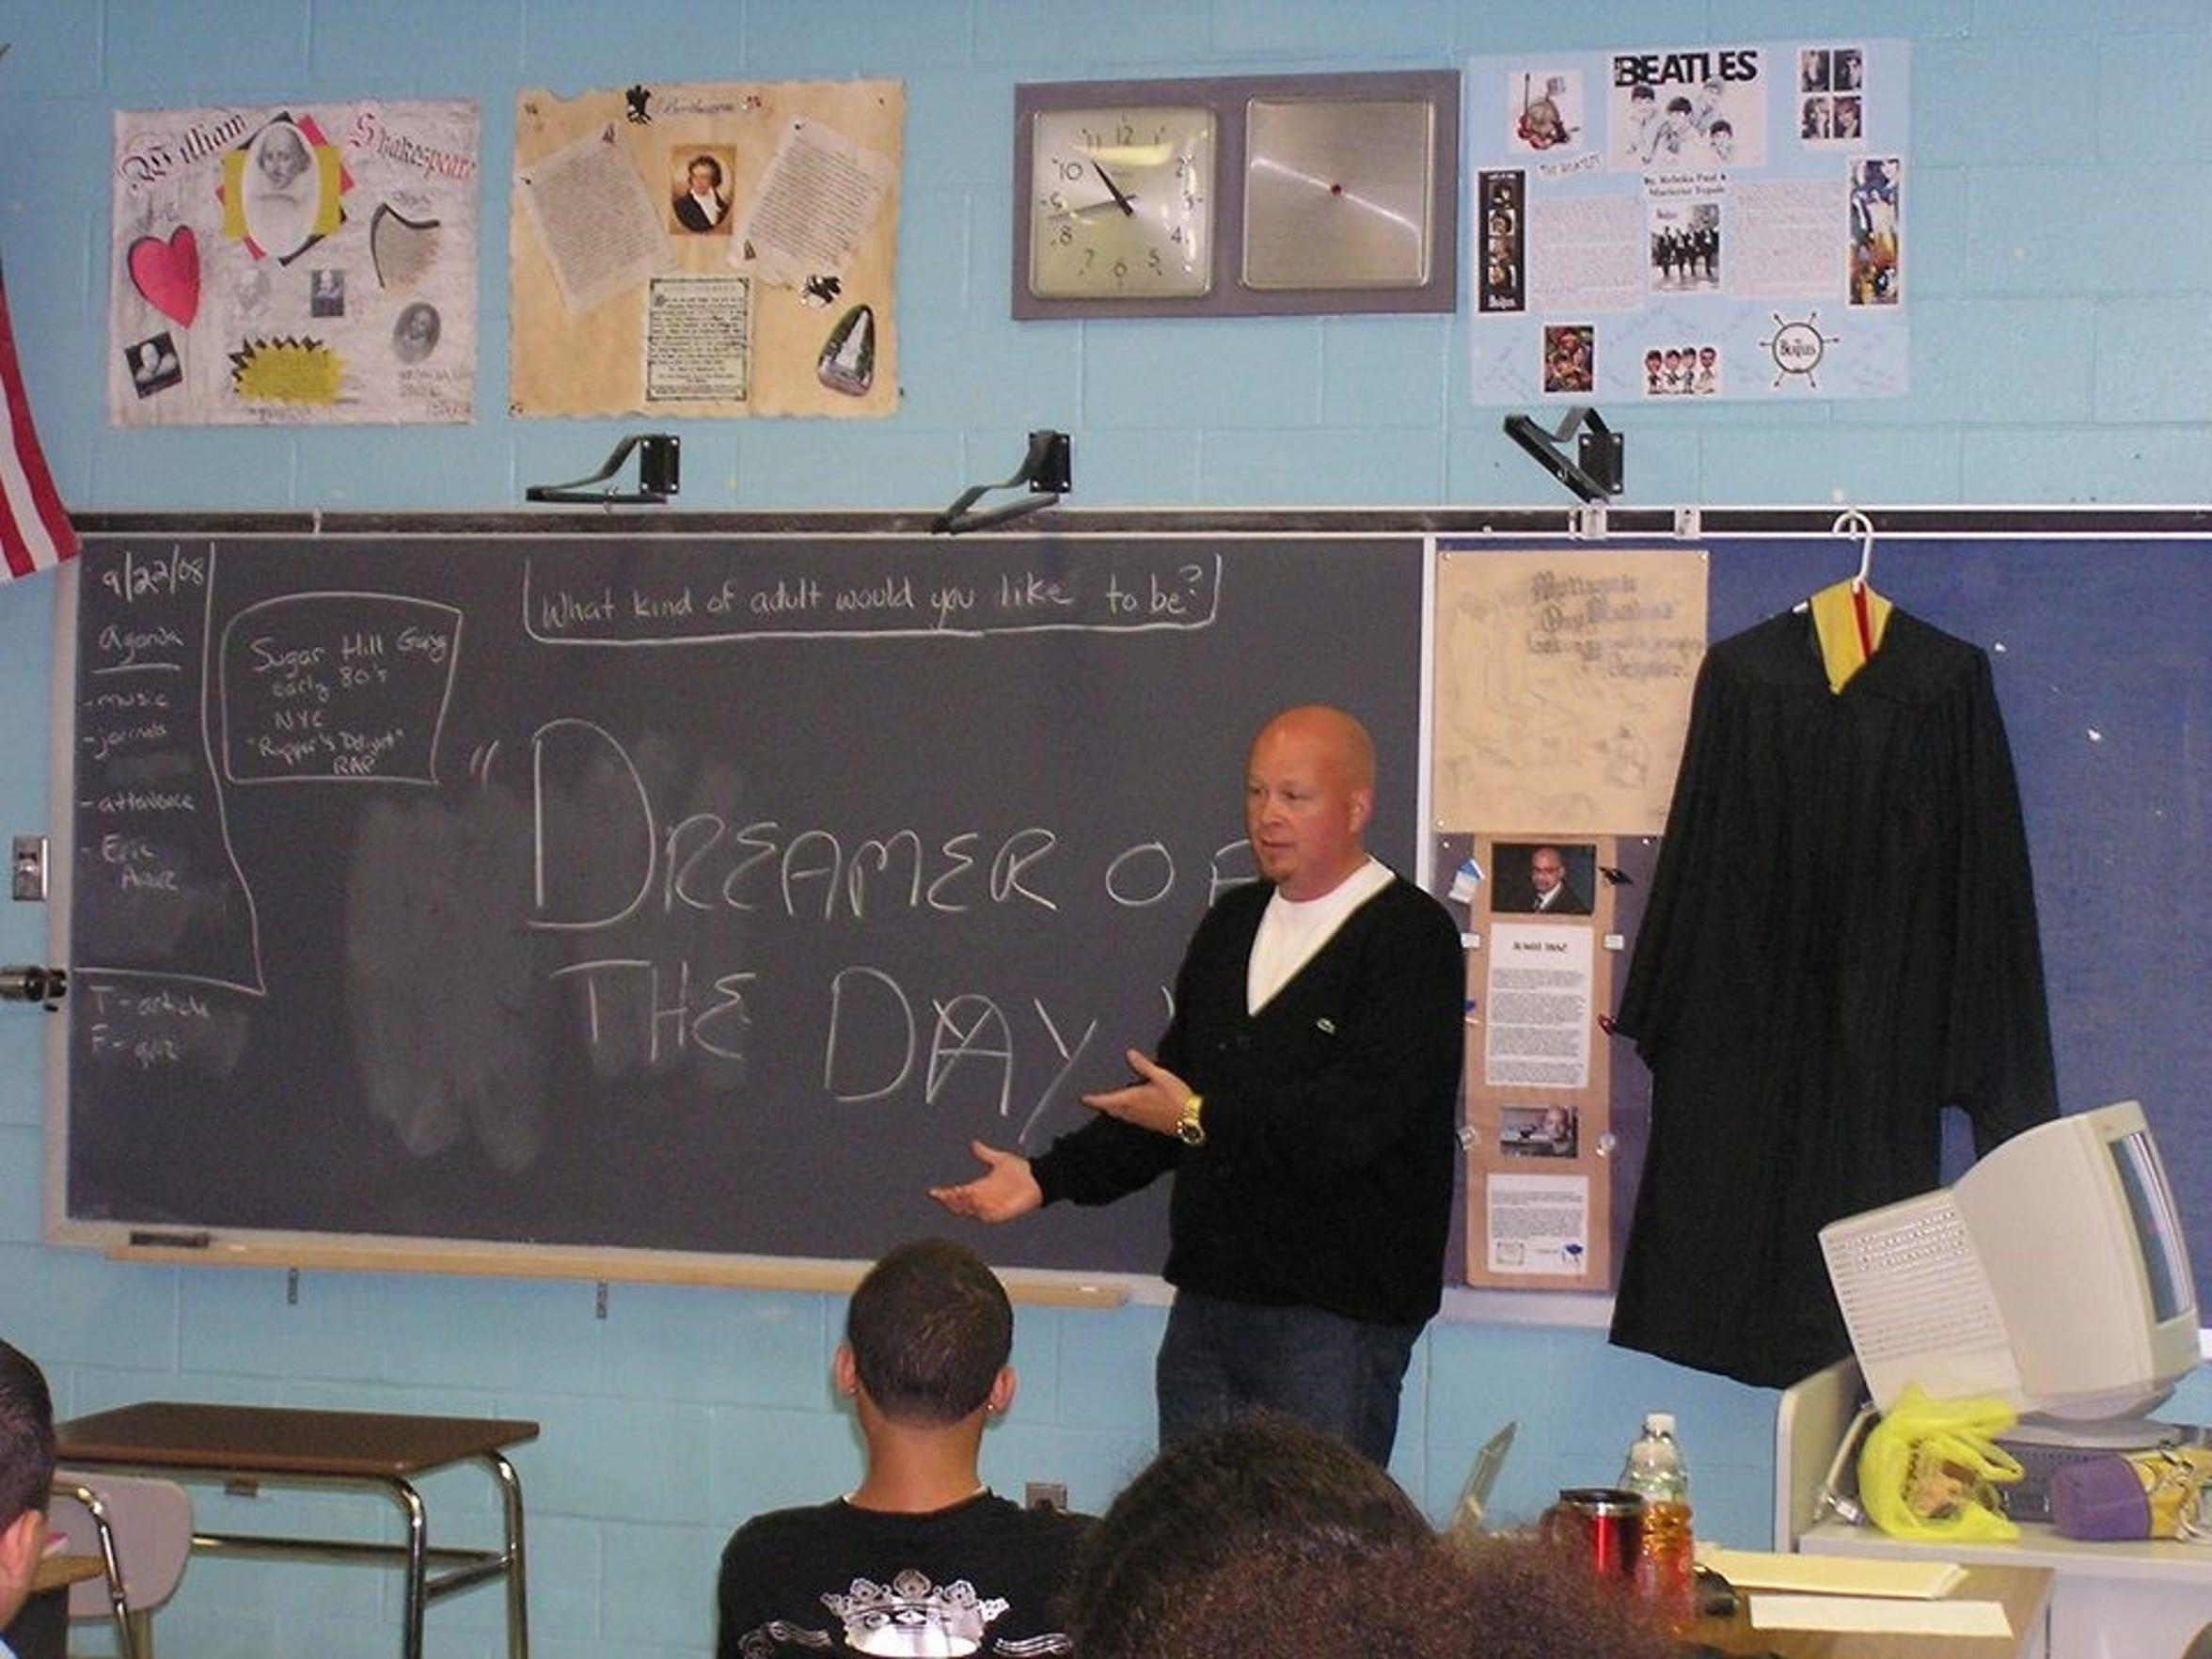 """Eric Arauz suddenly died at the age of 47 in March. His death sent shock waves through his friends, family and his widespread professional community in the mental health, drug advocacy and veterans' supportworlds. Arauz'sgood friend, Frank Greenagel of Piscataway, himself a specialist in grief therapy, needed a way to deal with his own grief. To cope, Greenagel wrote about Arauzevery day for 30 days, sharinghis stories and photographs on social media. Others followed suit and soon a book - """"The Book of Eric"""" - was created."""